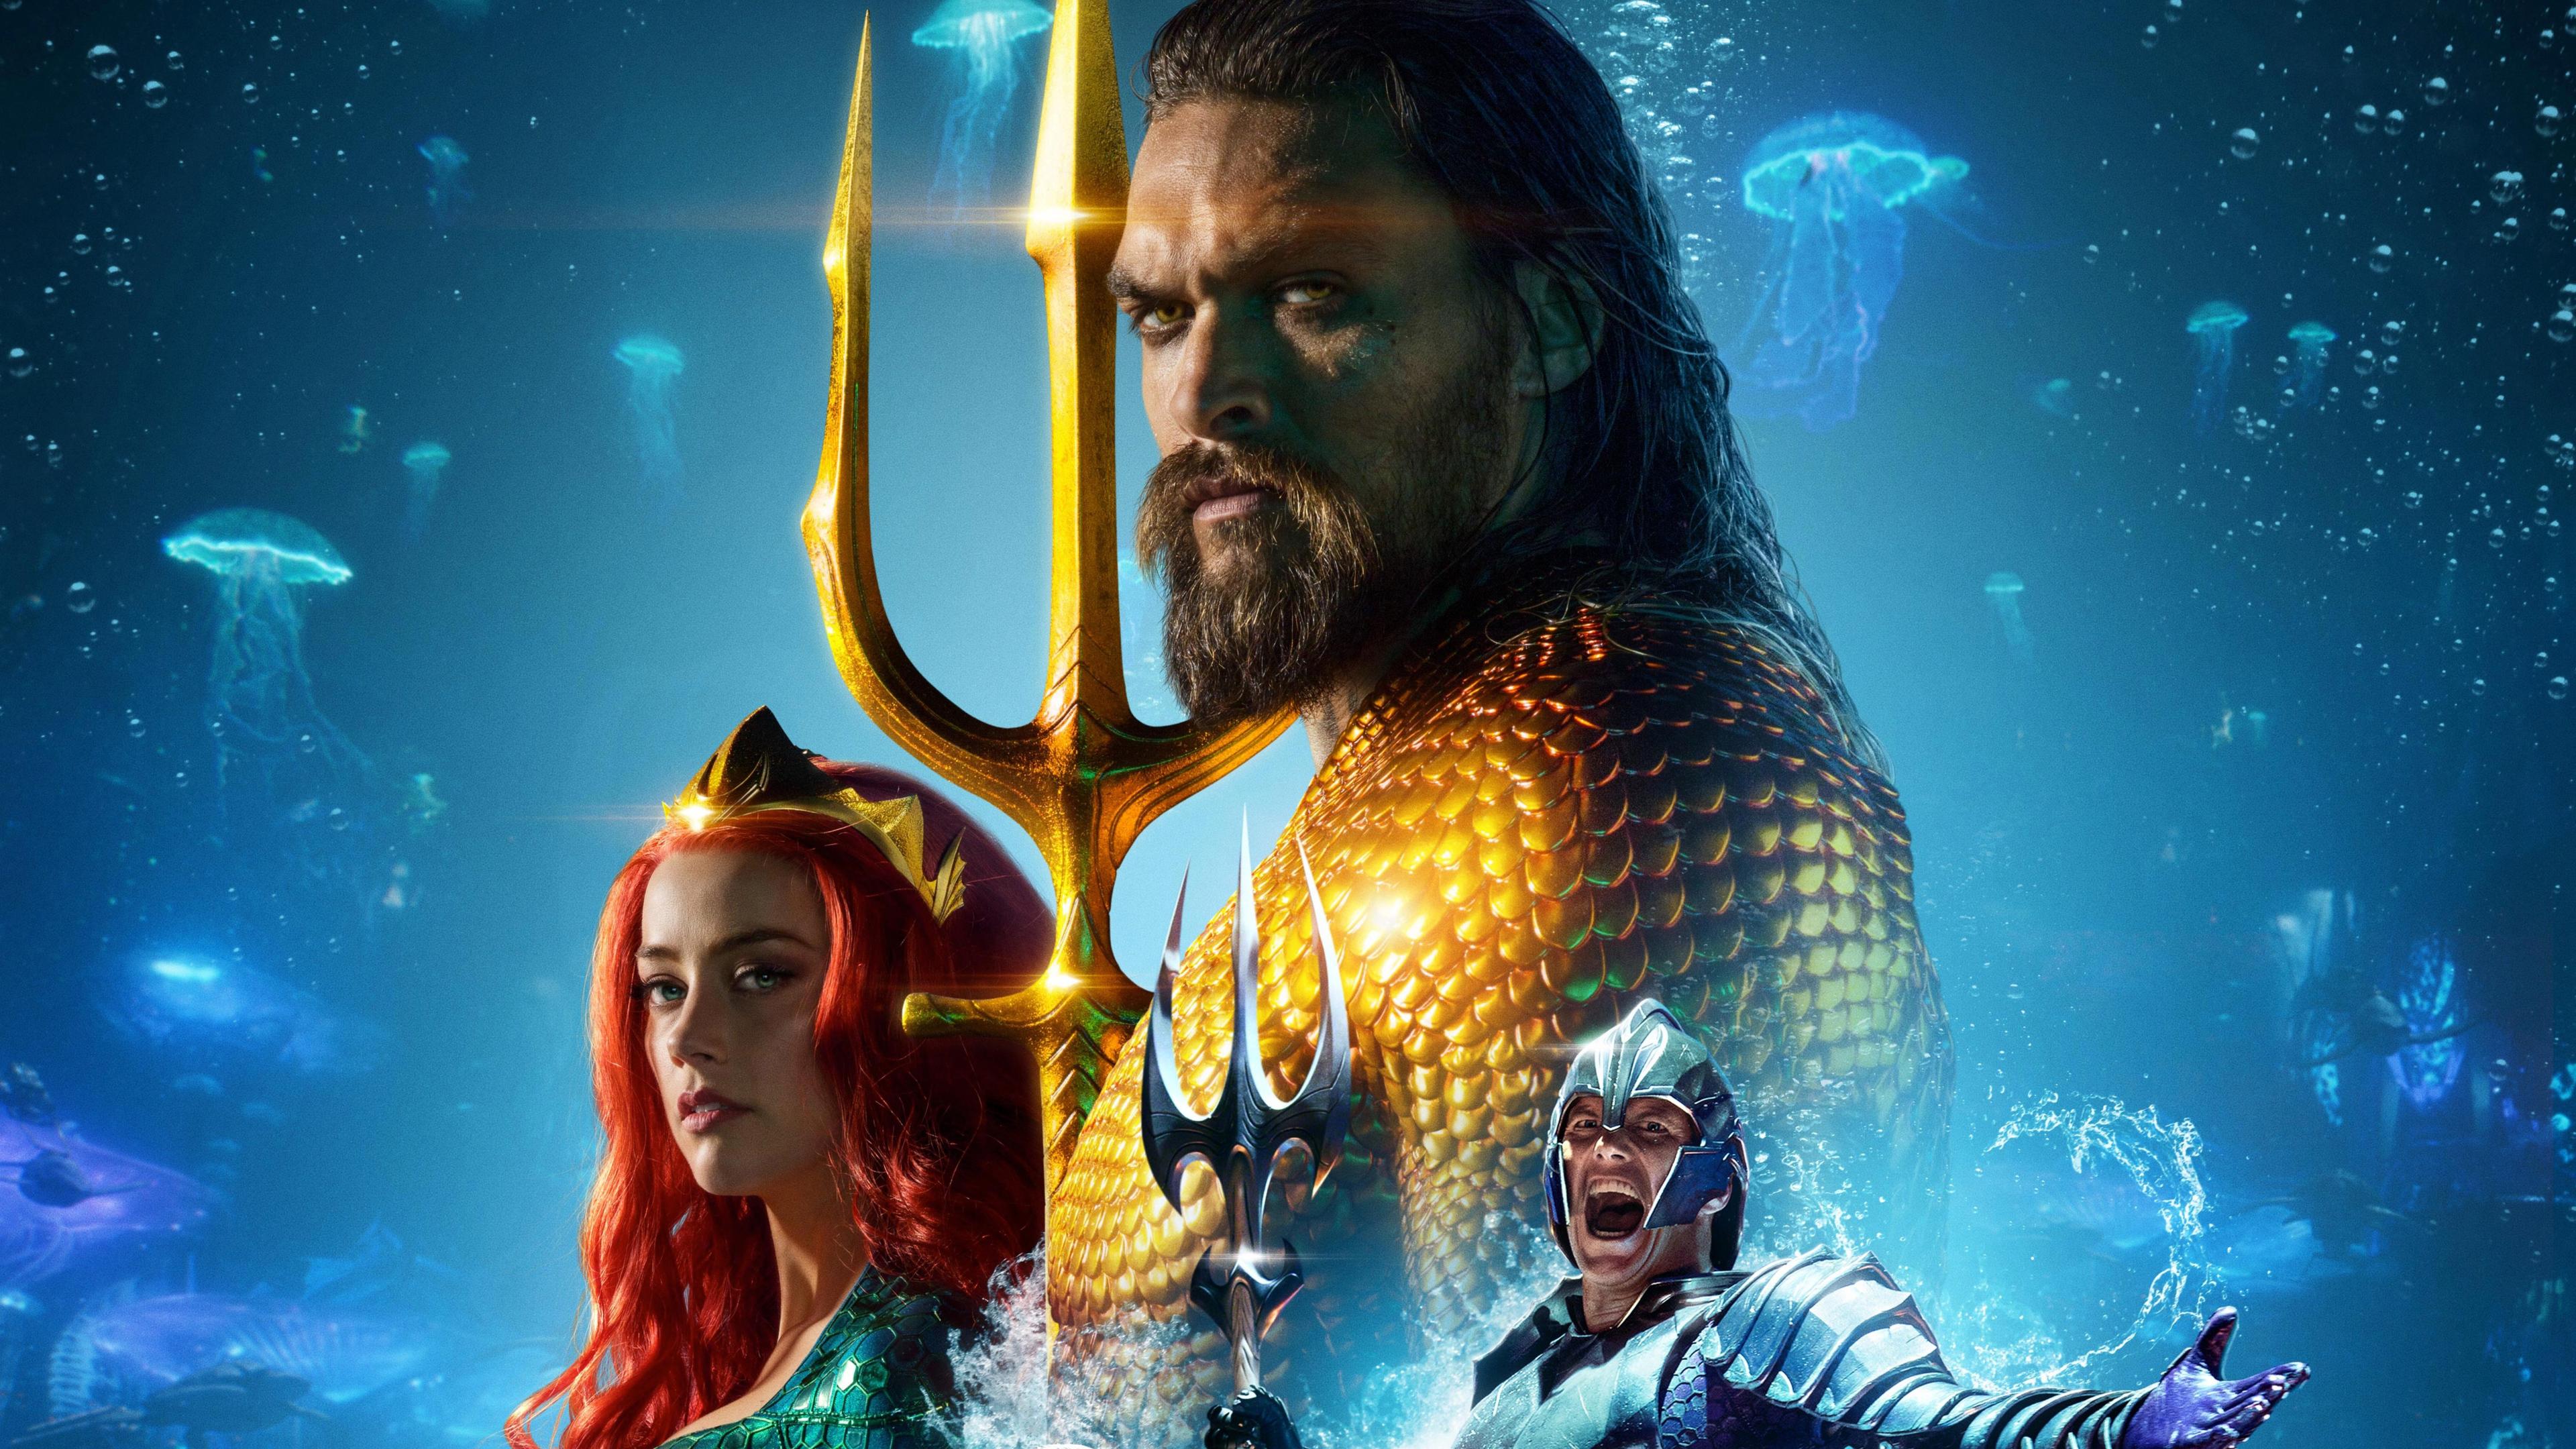 2048x2048 Mera Aquaman Movie Poster Ipad Air Hd 4k: Aquaman International Poster 4k Poster Wallpapers, Movies